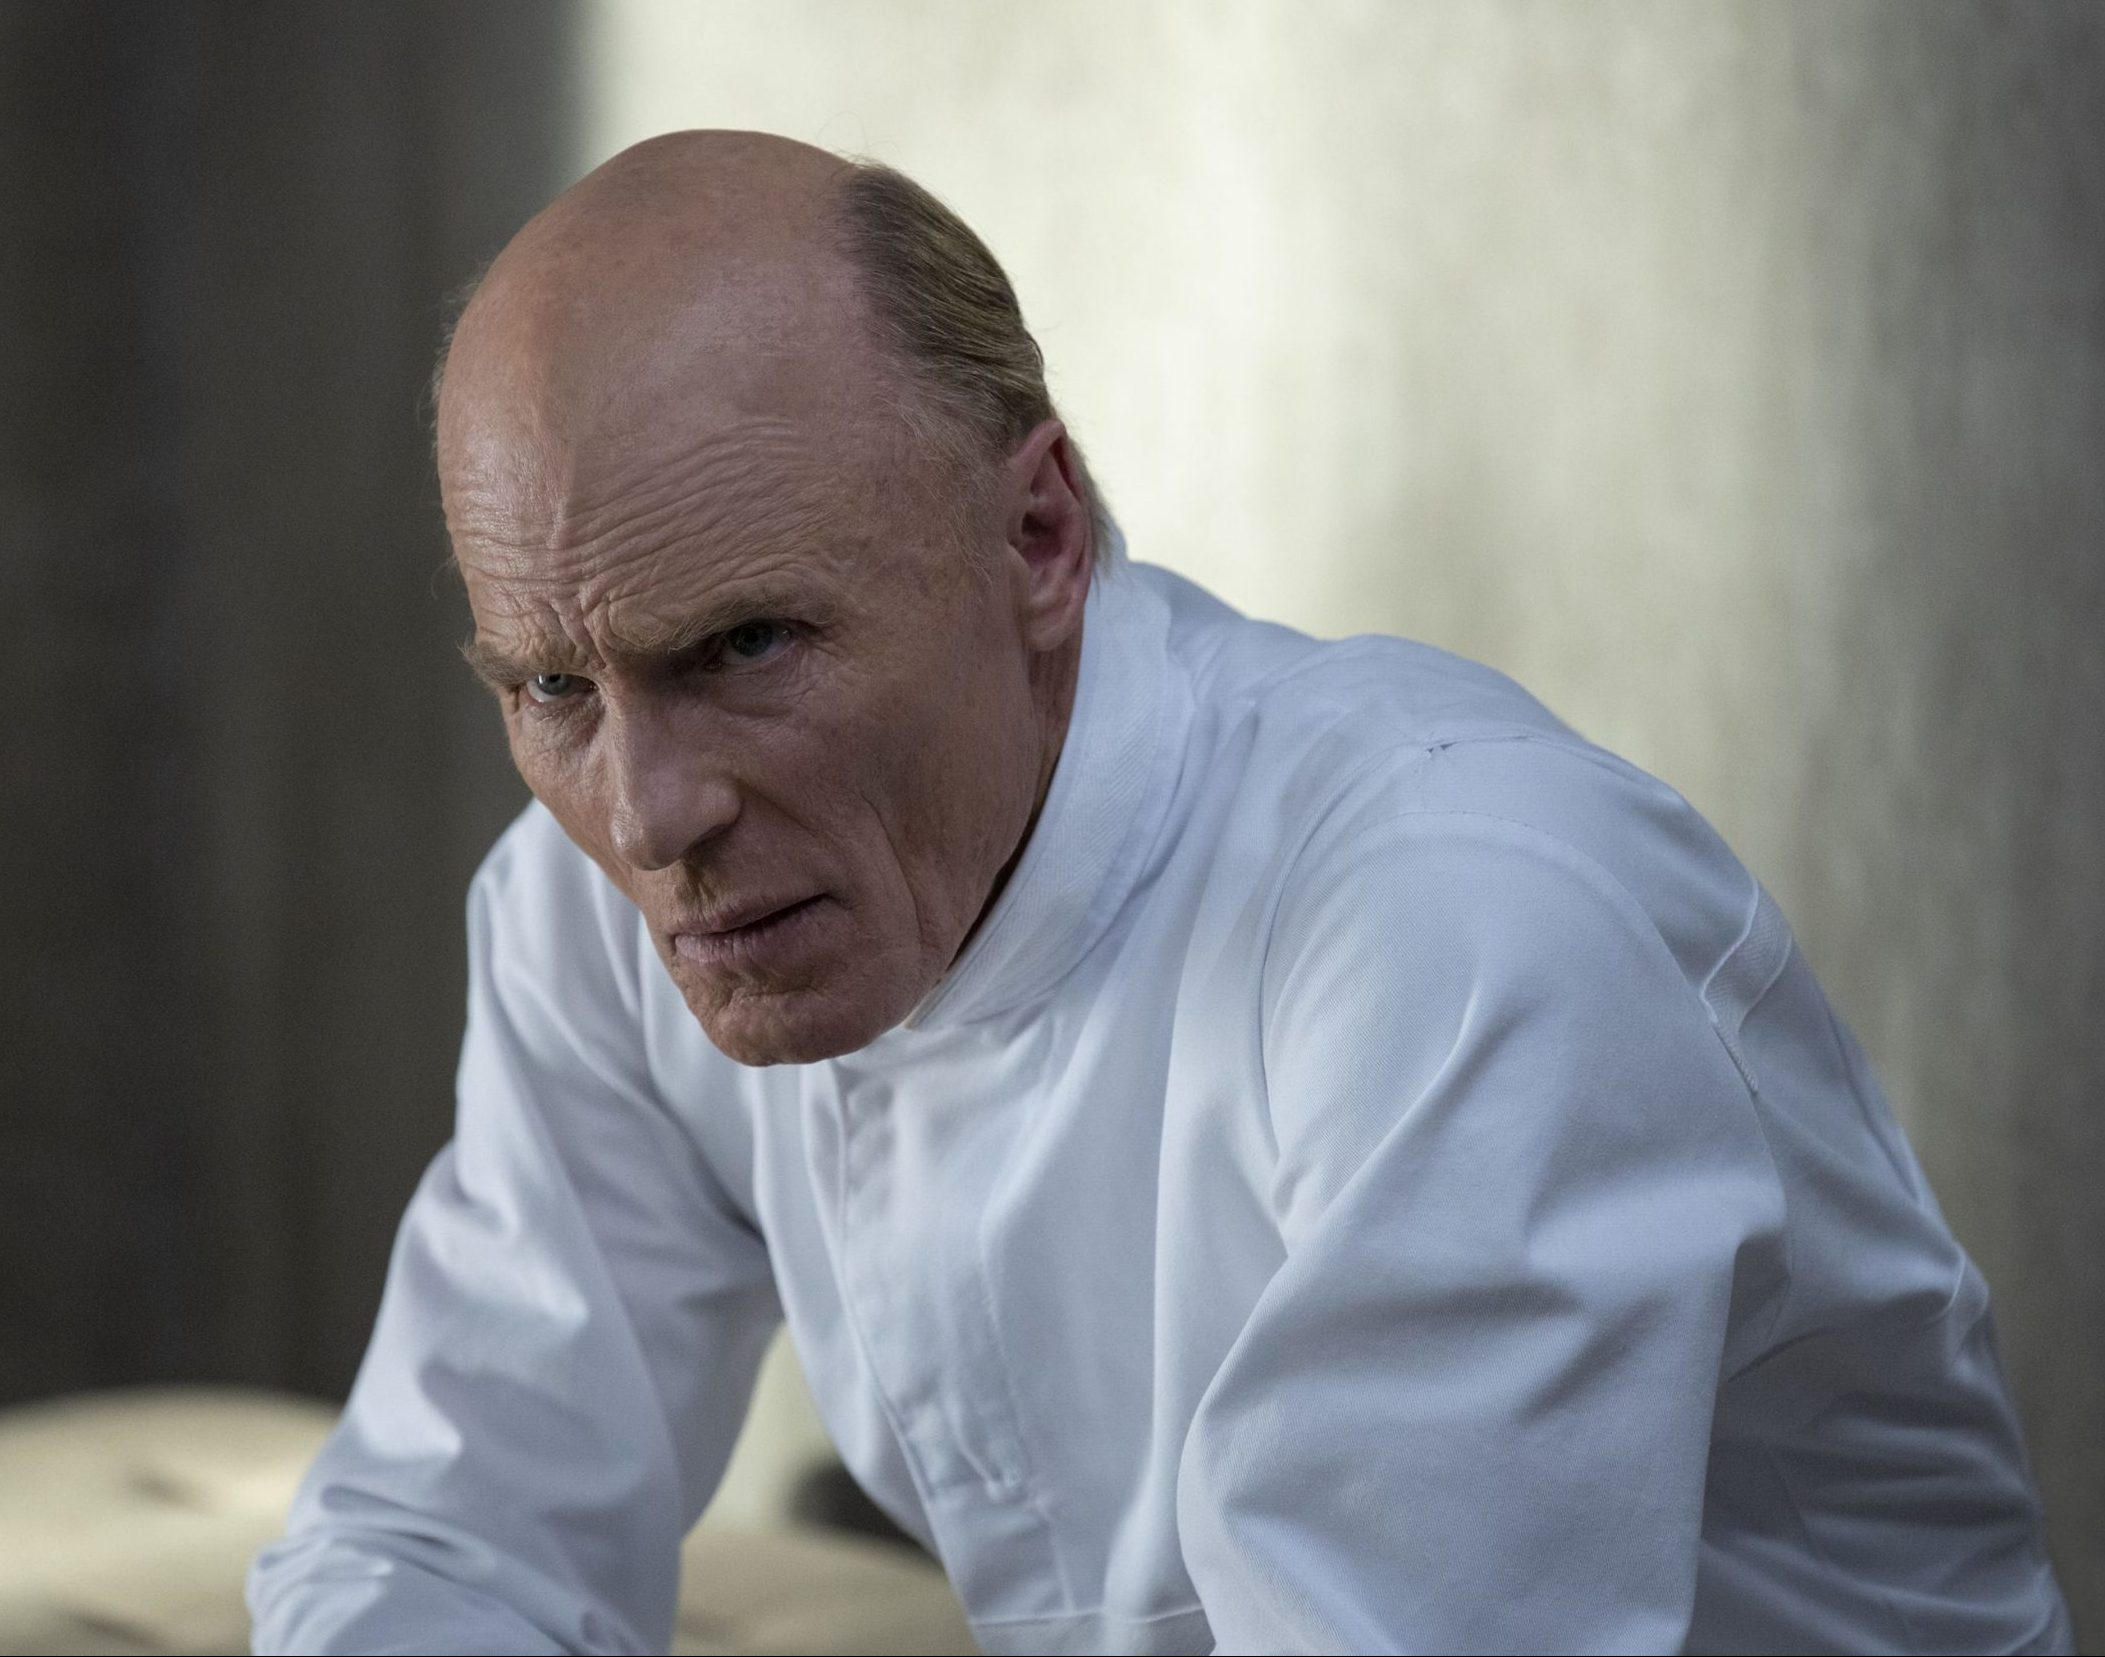 06 02 westworld s03 1587761334 scaled e1607091475465 20 Things You Never Knew About Ed Harris